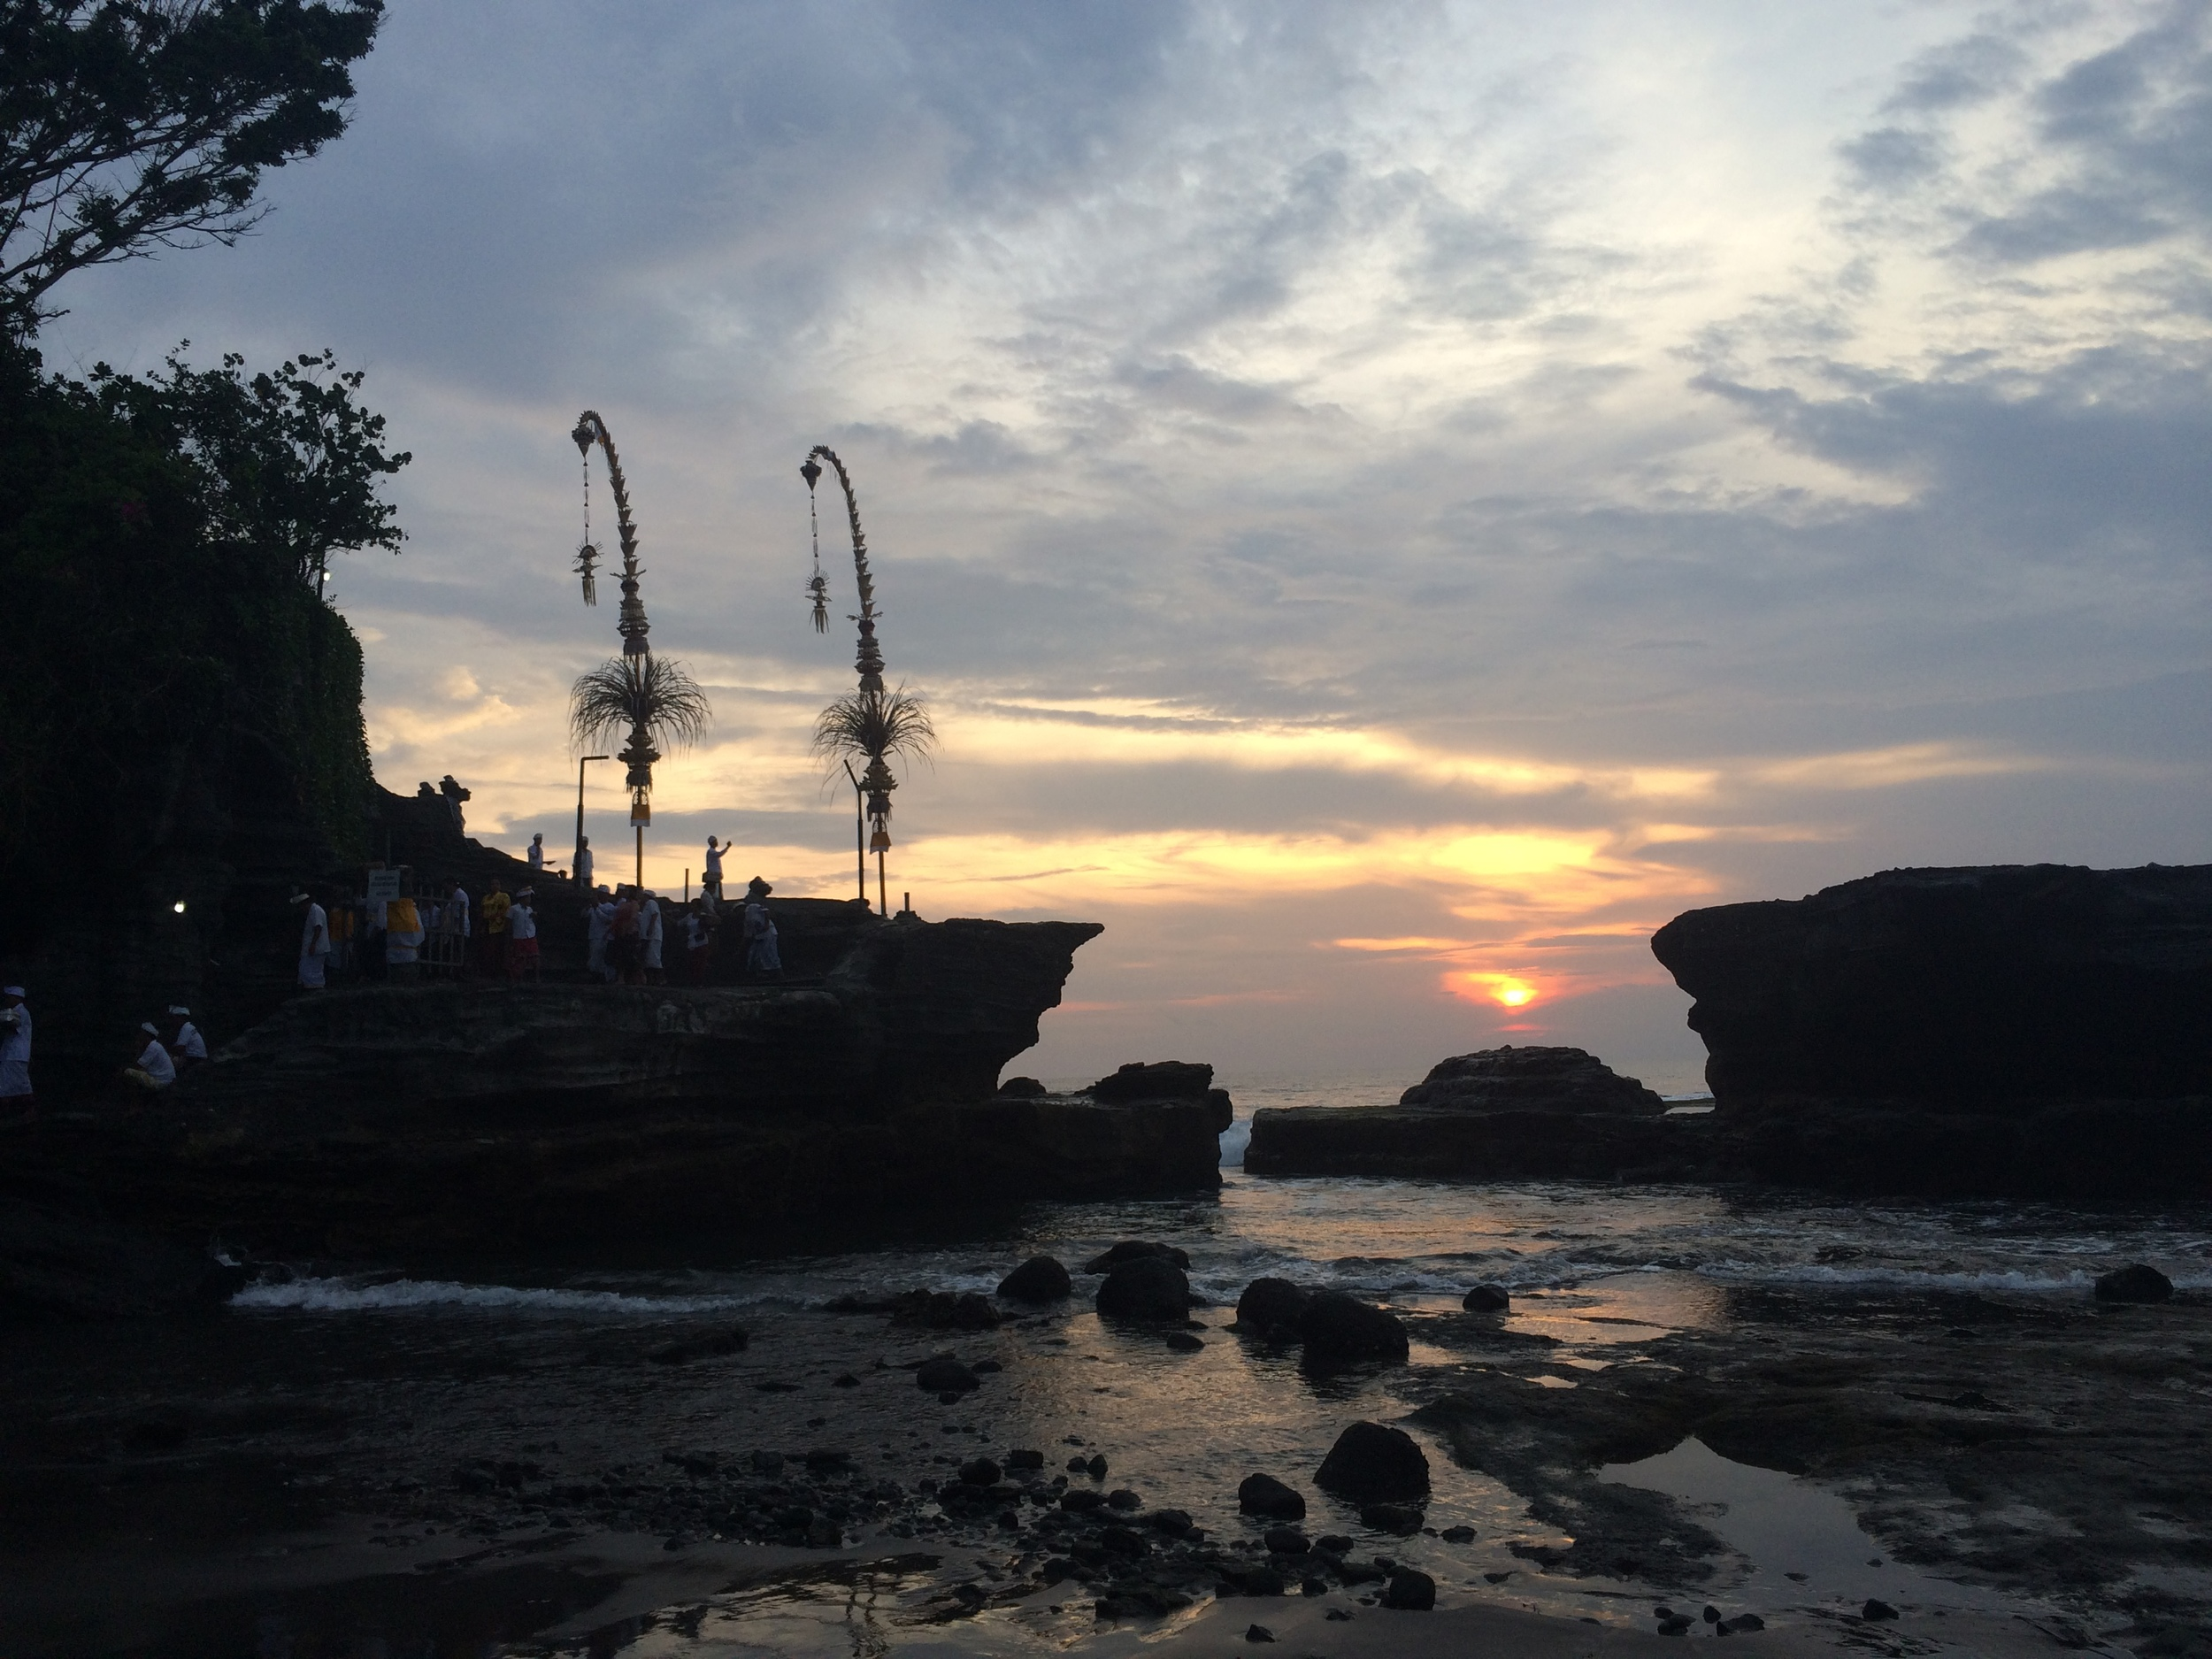 Sunset over the Tanah Lot Temple